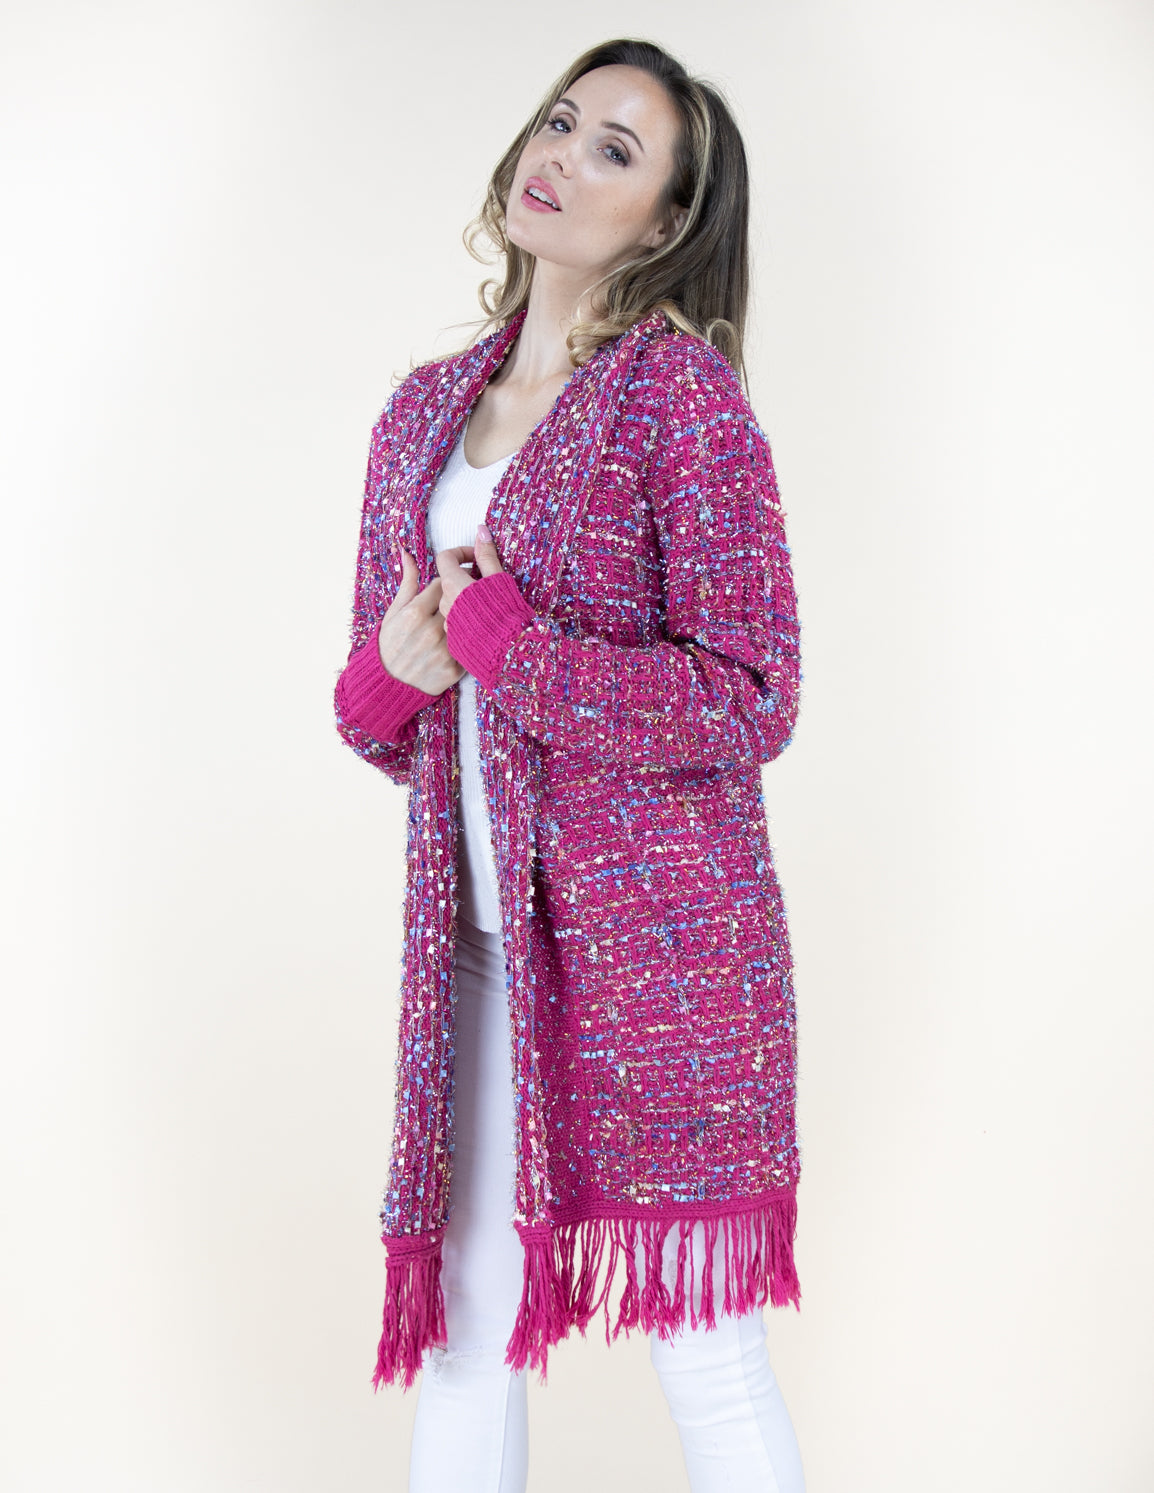 Fuchsia Tweed Pattern Cardigan Sweater with Fringe